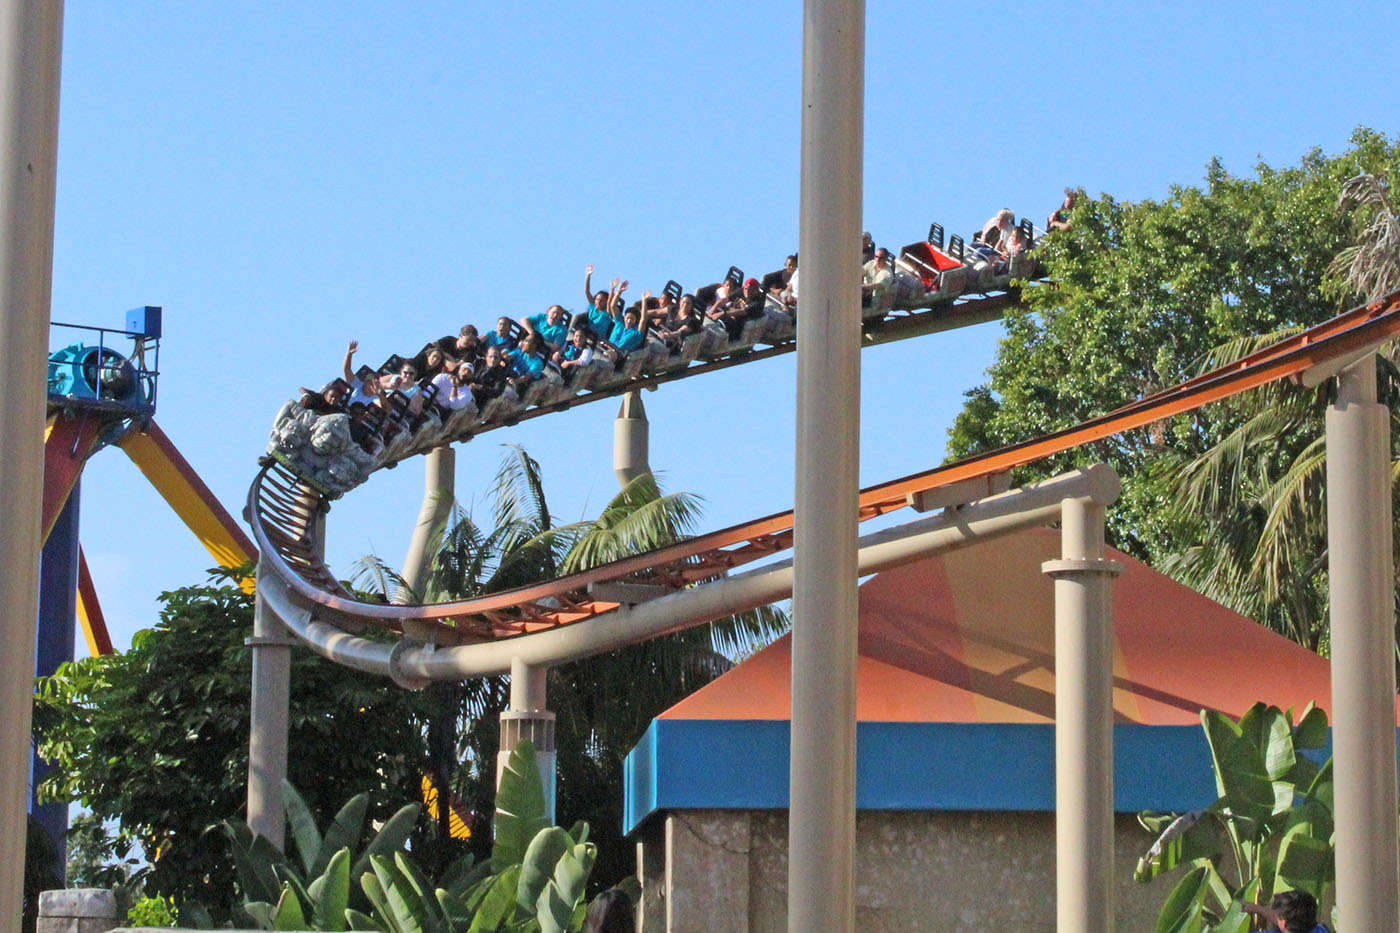 USA: Knott's Berry Farm's surprisingly scary rides ... |Knotts Berry Farm Coasters